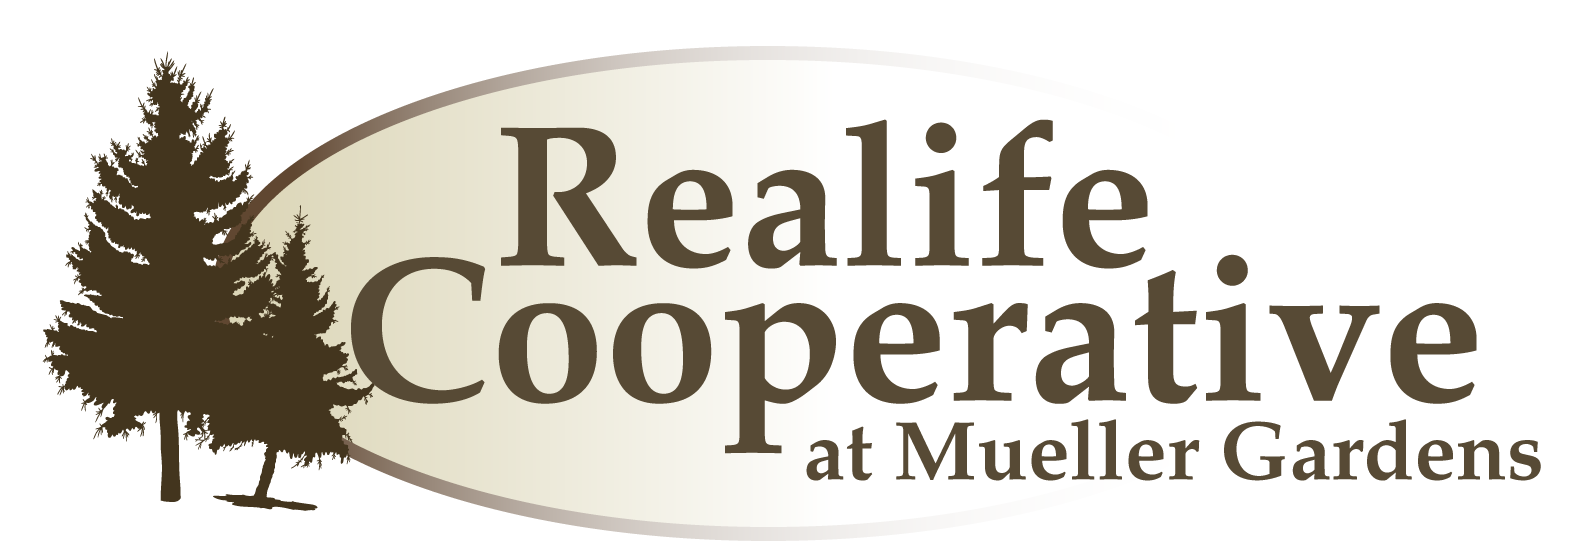 Realife Cooperative At Mueller Gardens